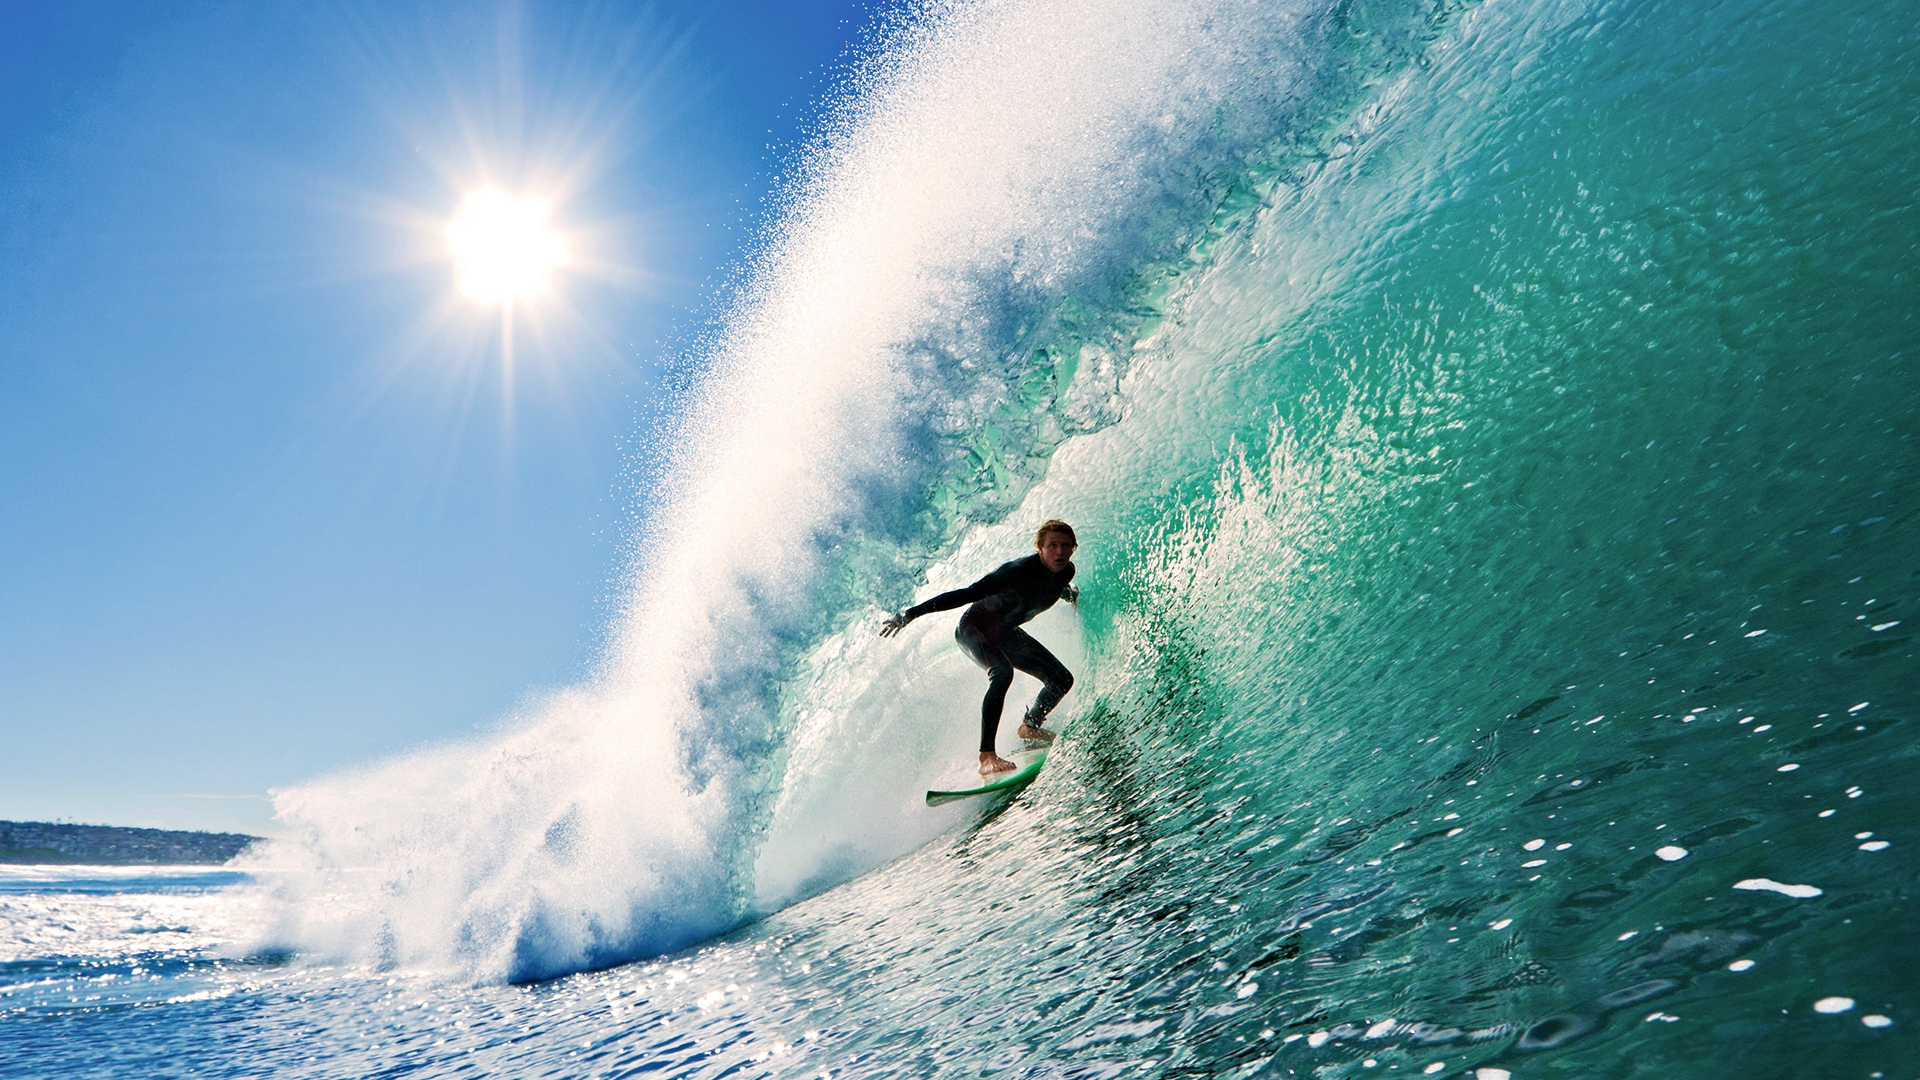 Download Surfing HD Wallpapers